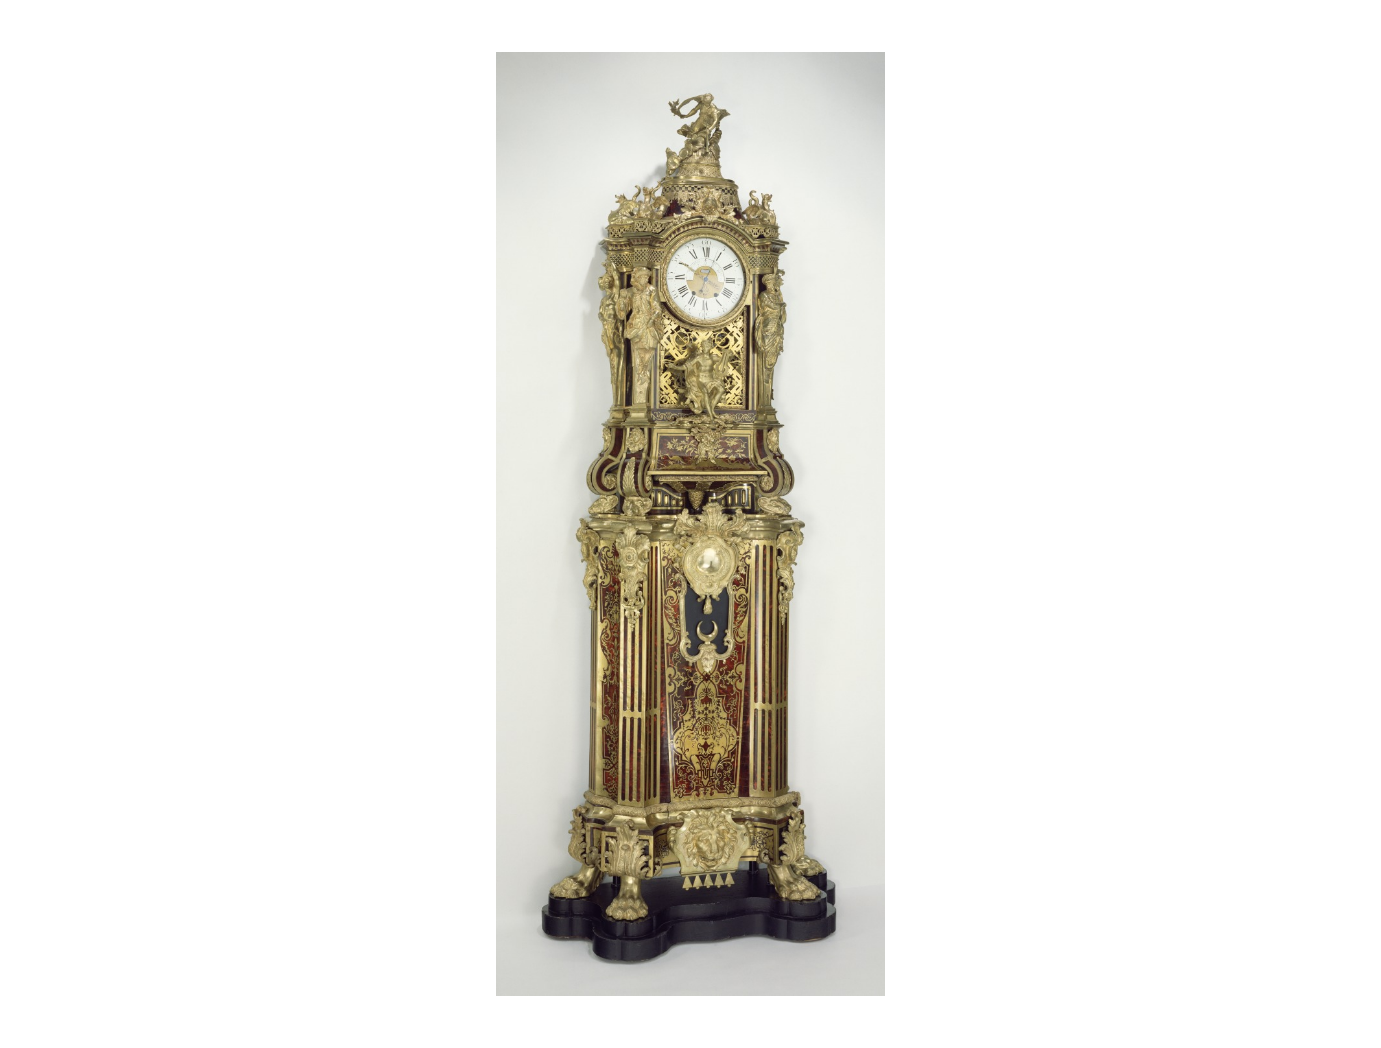 Long case musical clcok. Clock case attributed to Alexandre-Jean Oppenordt, designer; possibly after designs by Gilles-Marie Oppenord, designer French, Paris, about 1712, J. Paul Getty Museum,Los Angeles